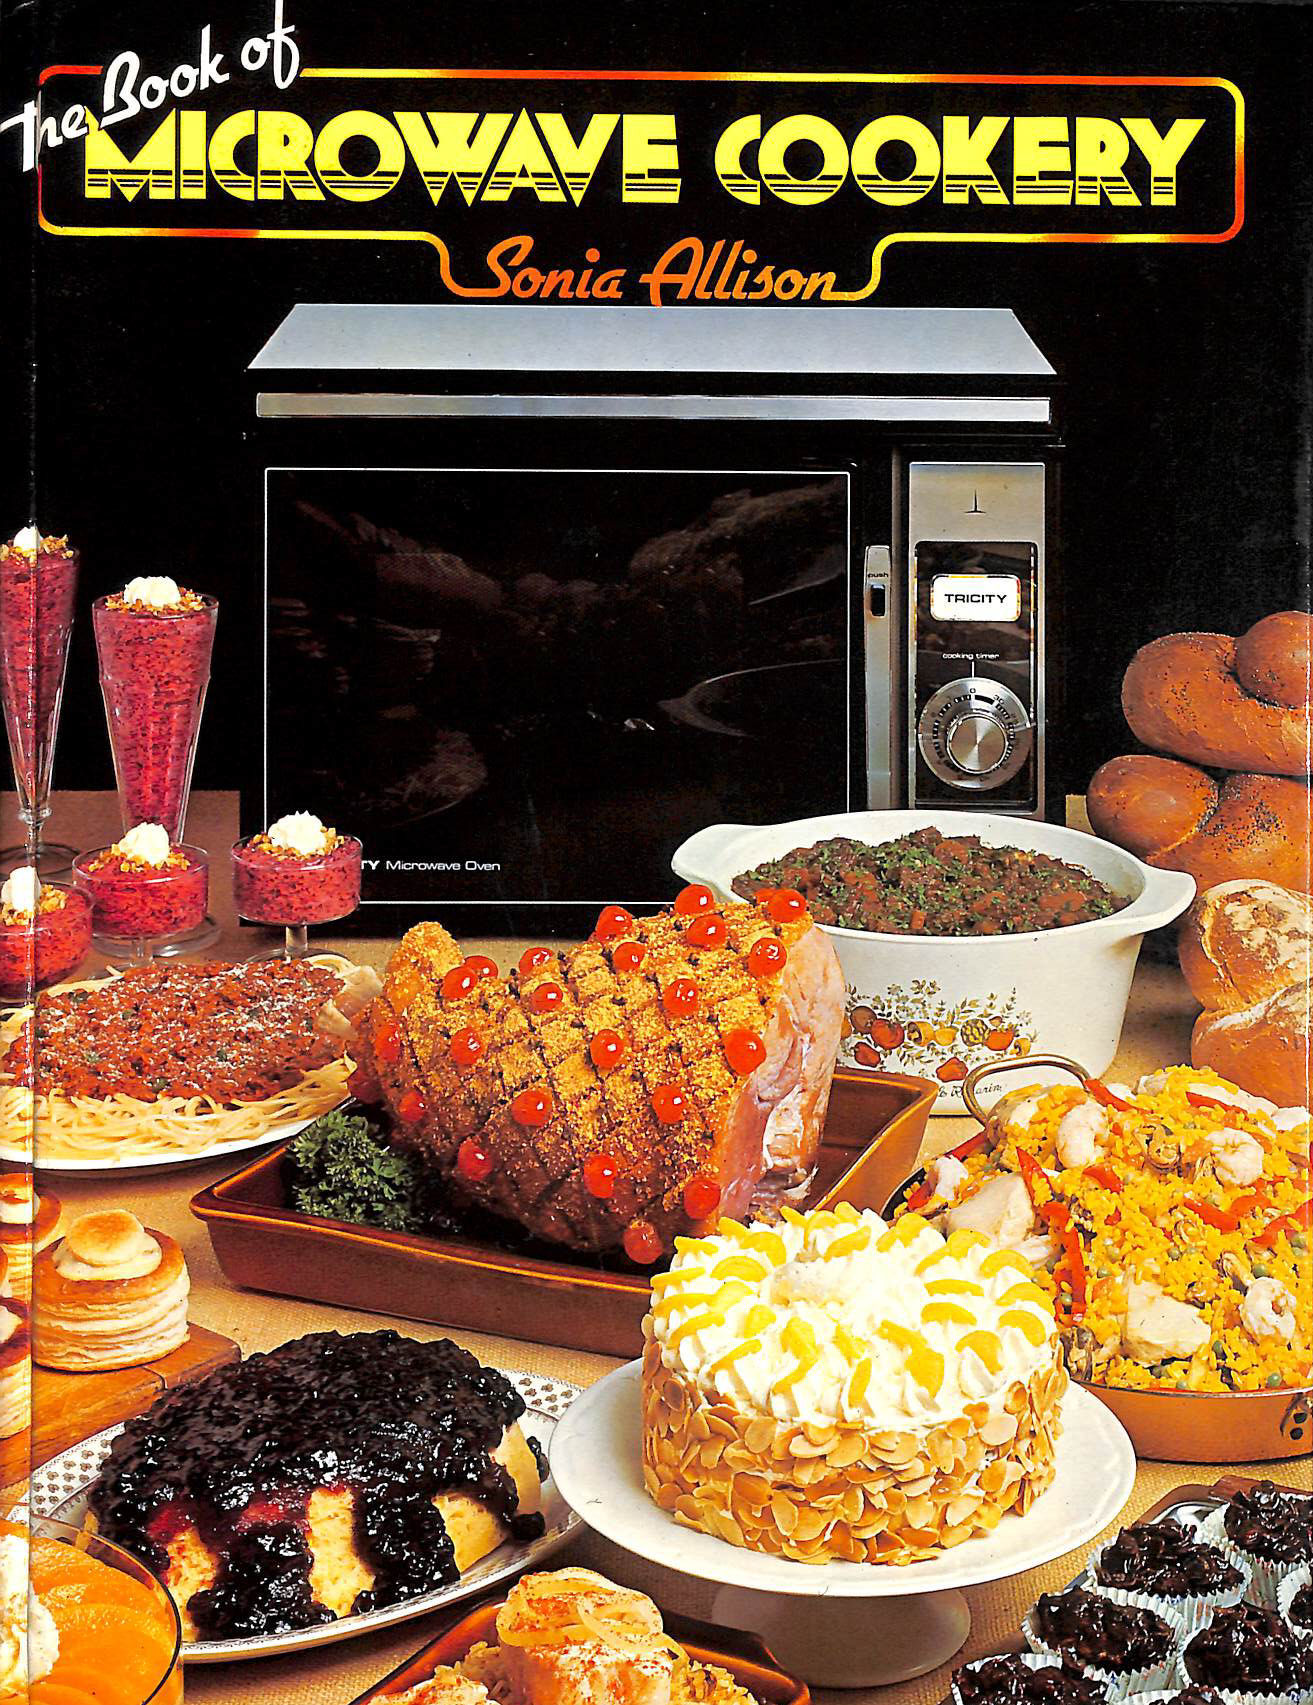 Image for Book of Microwave Cookery